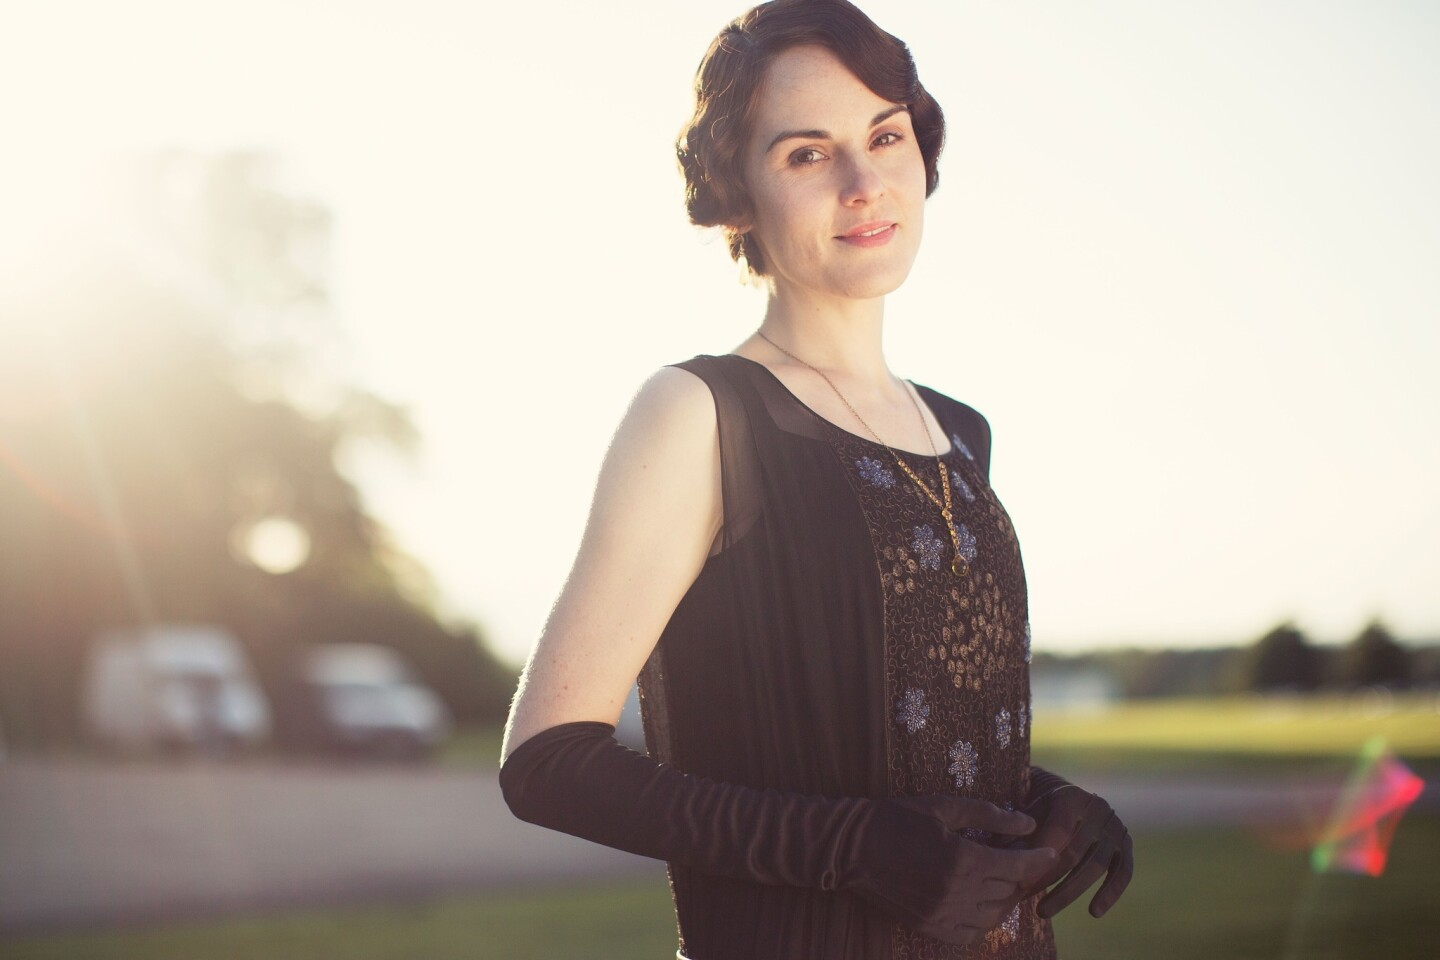 Michelle Dockery | 'Downton Abbey' | Drama lead actress